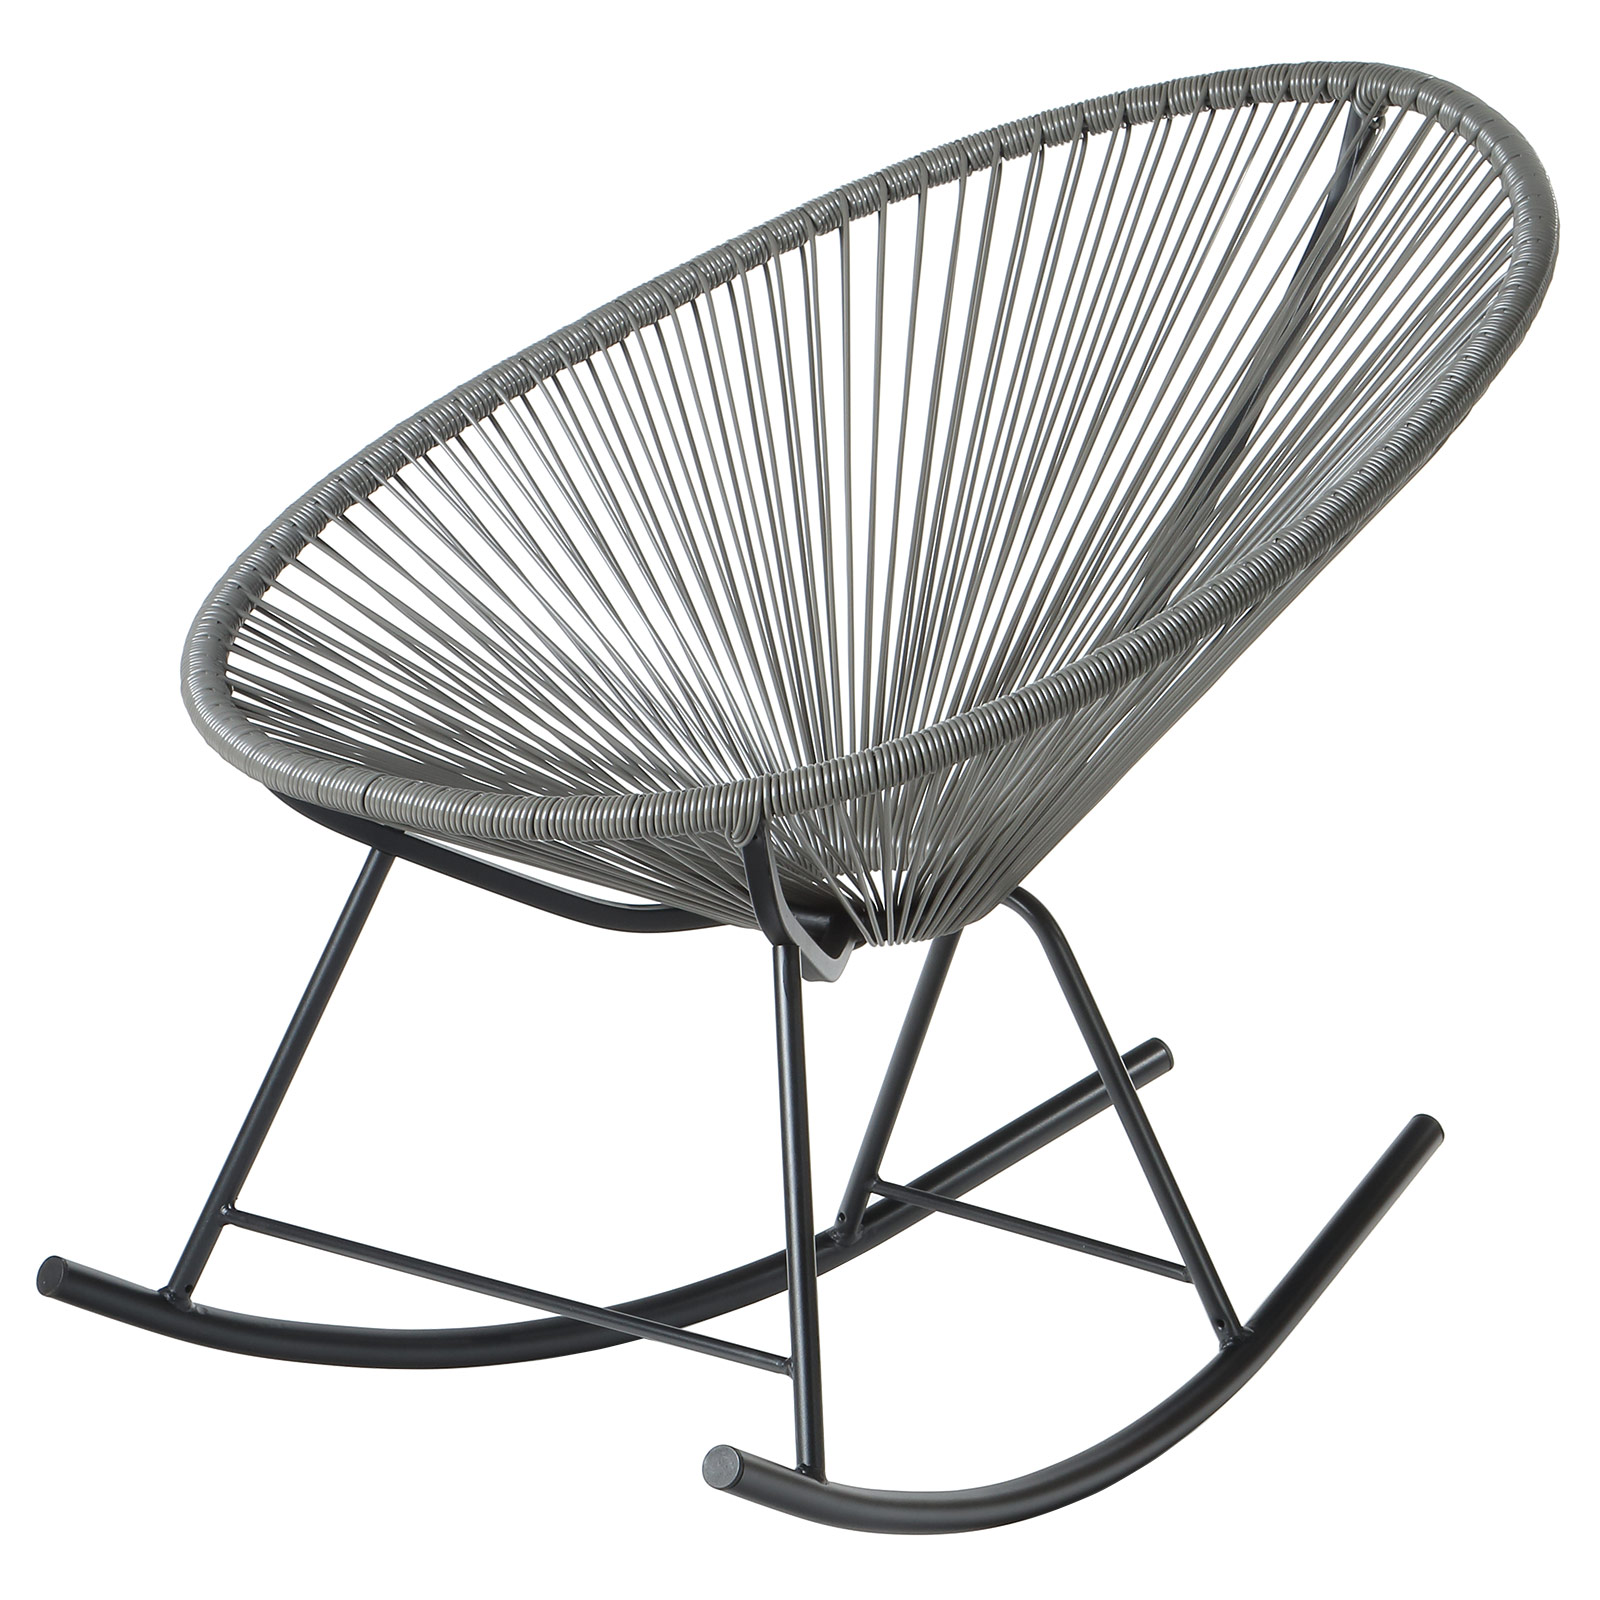 Acapulco Indoor / Outdoor Outdoor Patio Rocking Chair (Grey)